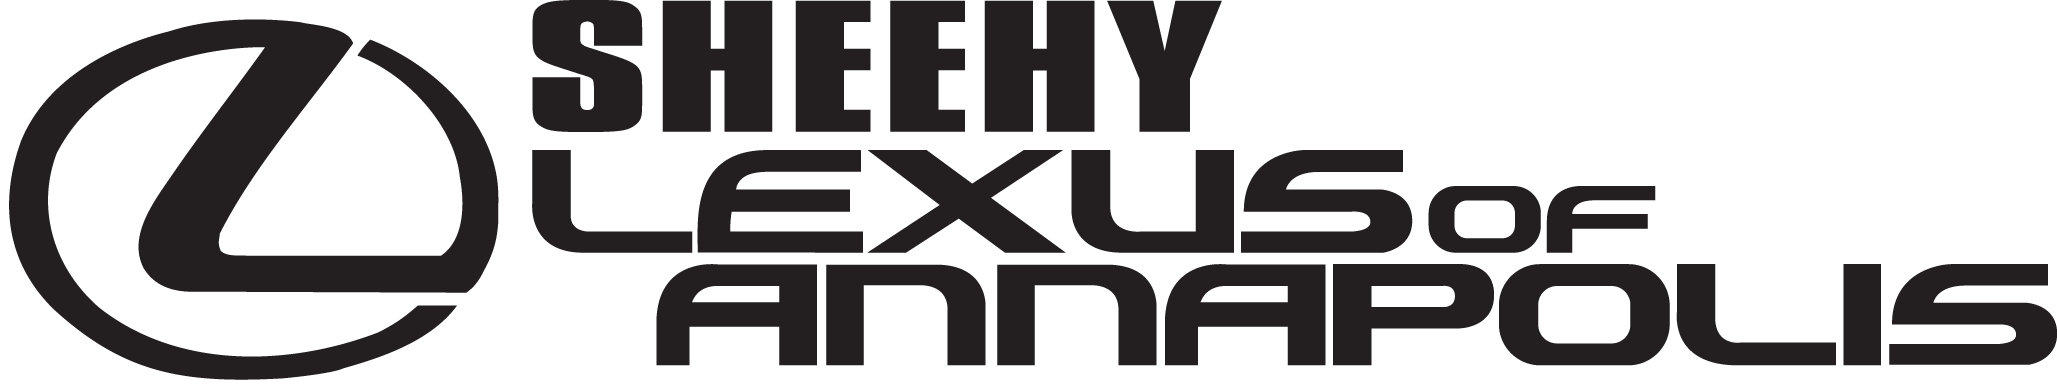 SHEEHY-LEXUS-Logo-Final-2012